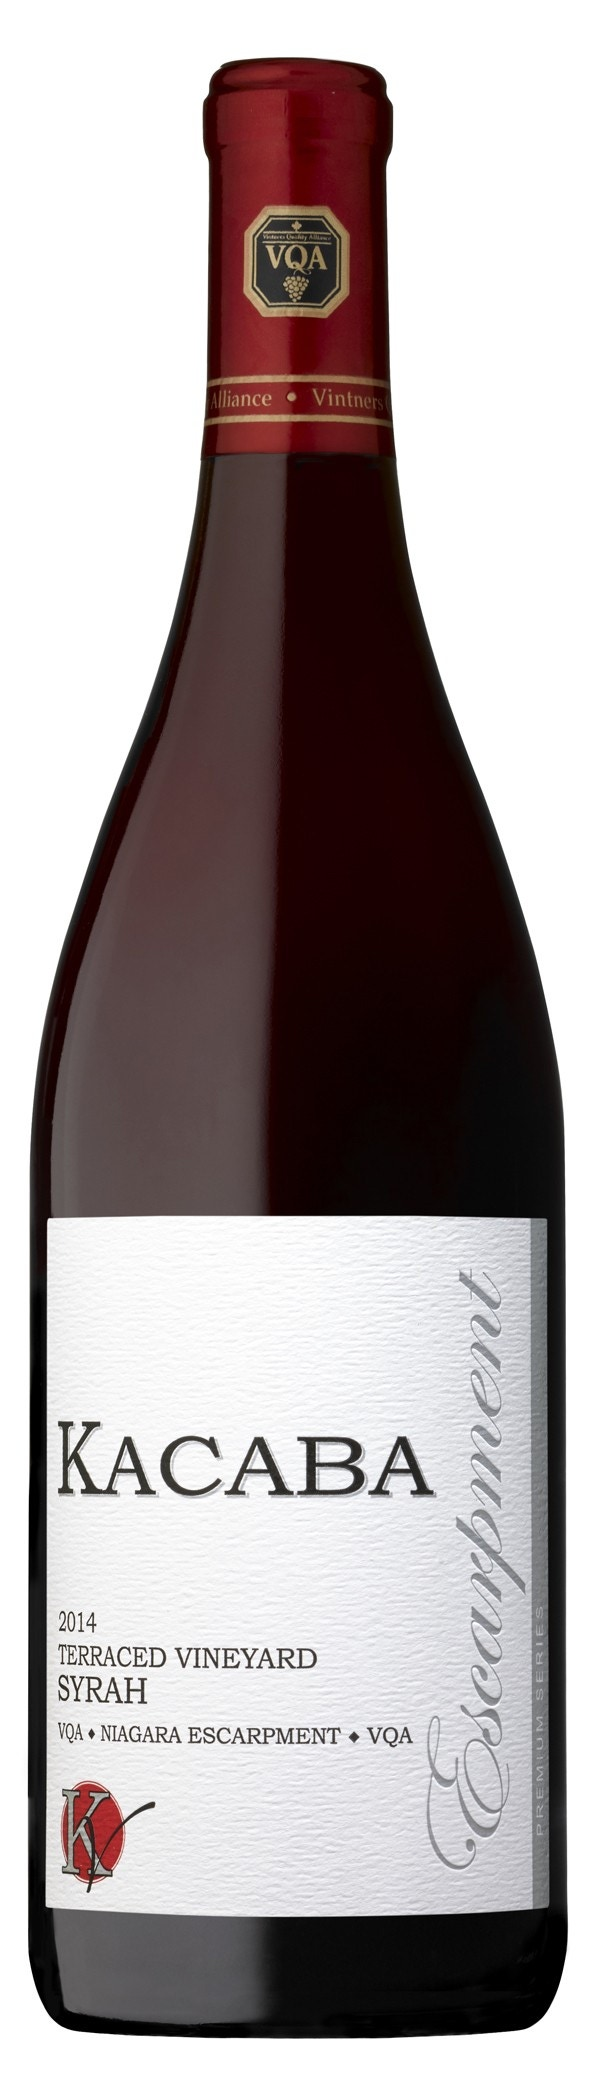 Terraced Vineyard Syrah